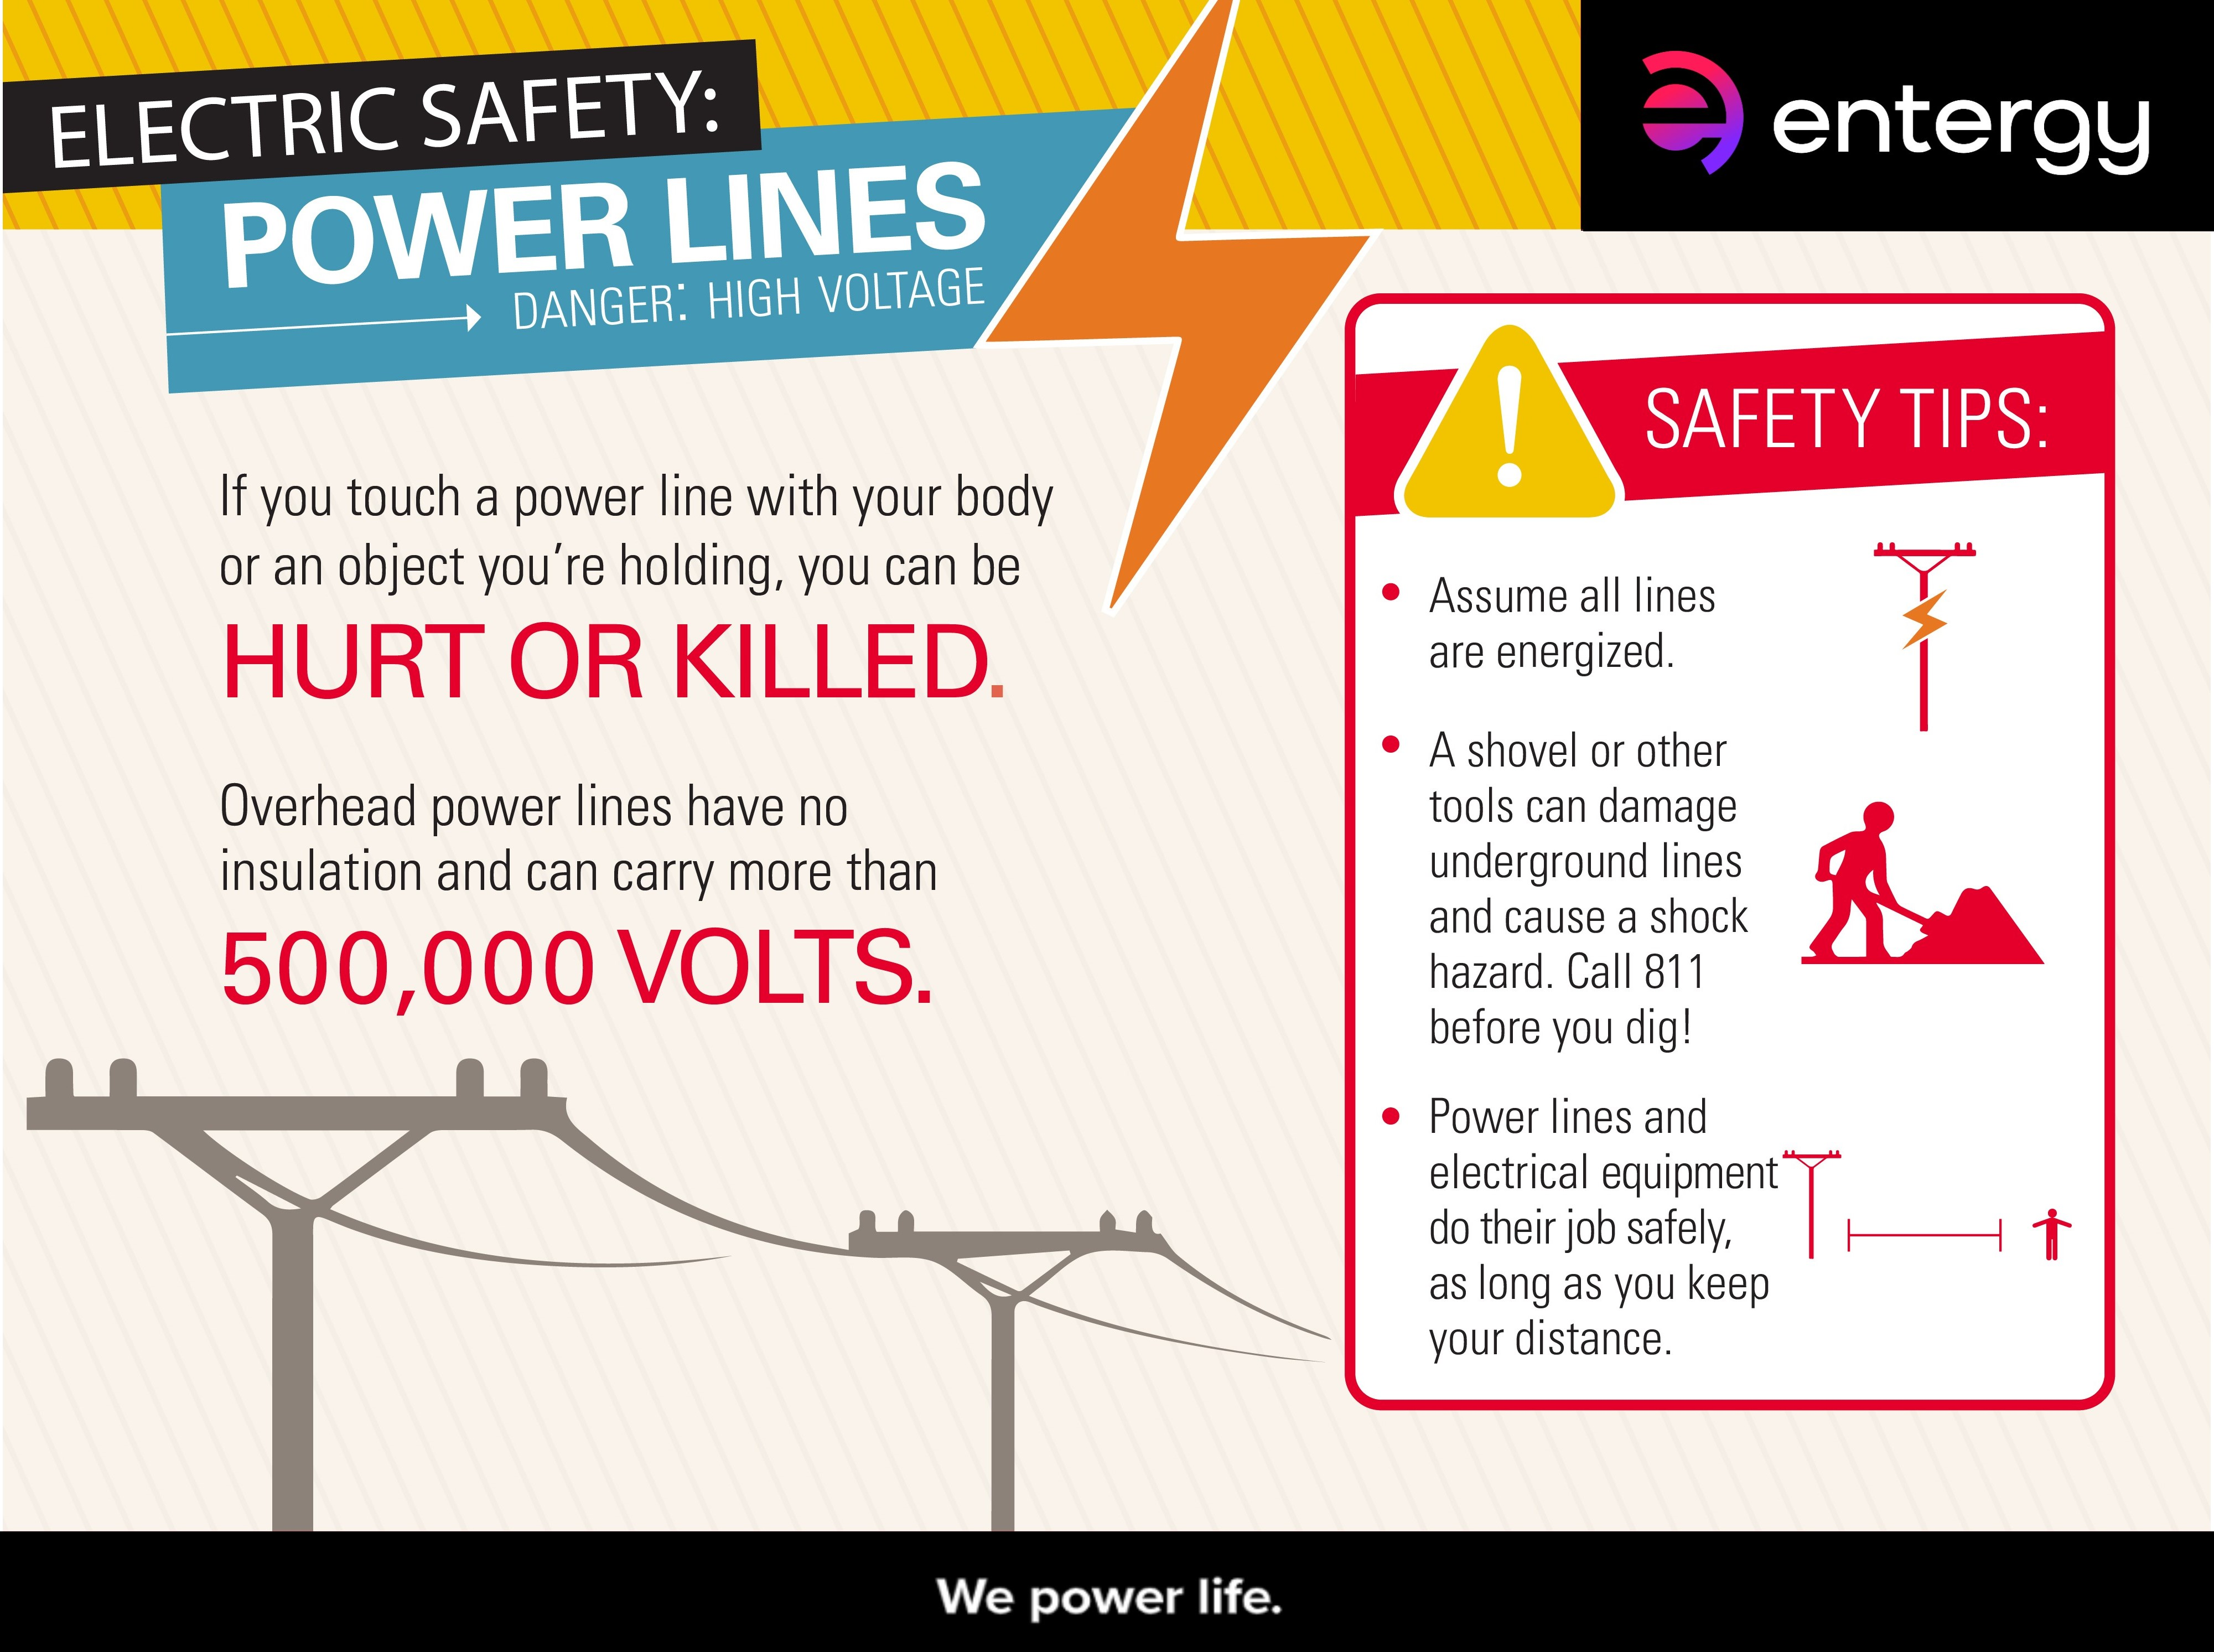 Electric Safety Power Lines Entergy Newsroom